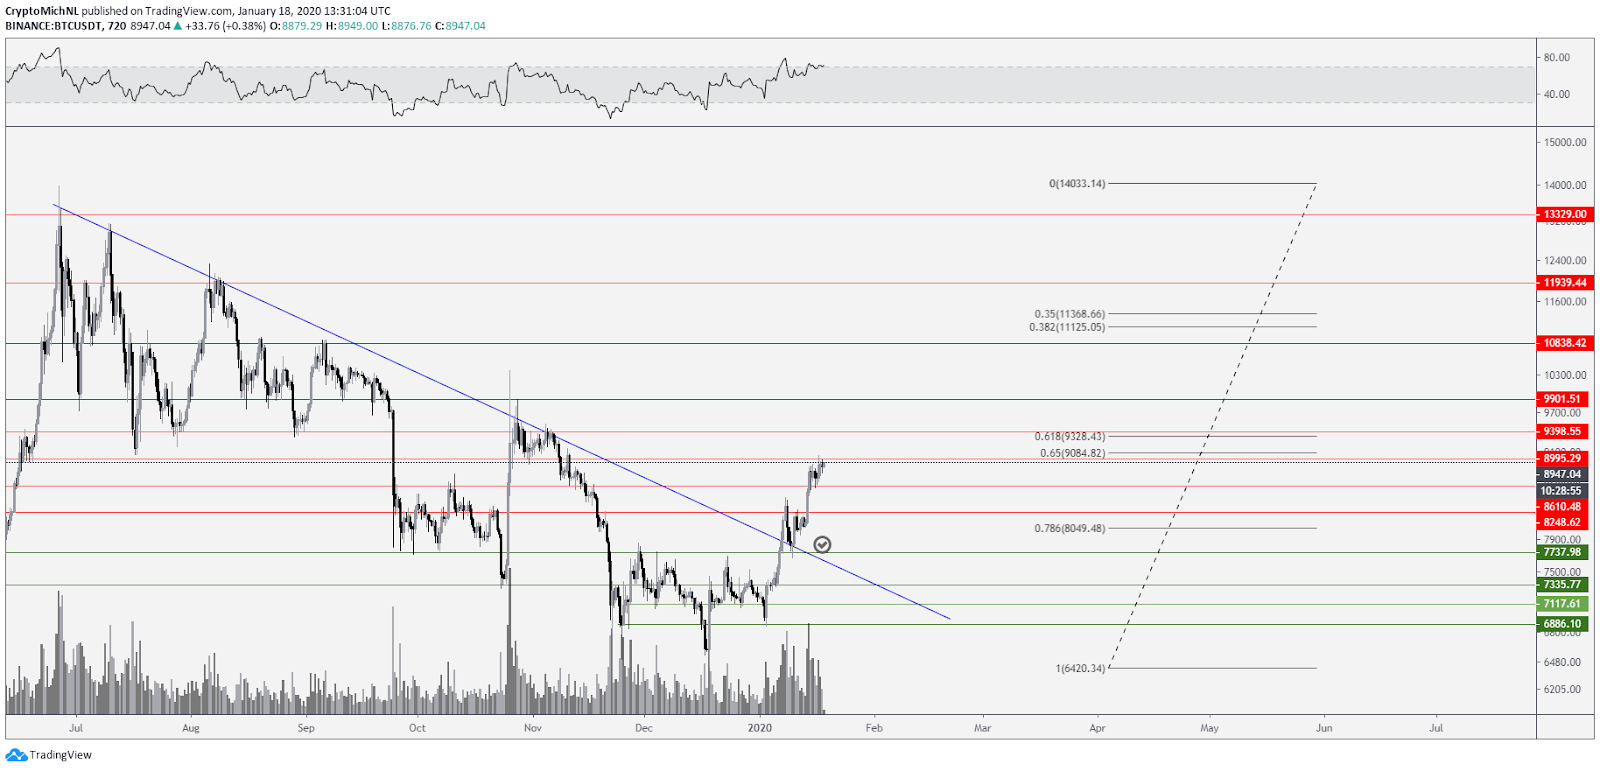 BTC USDT 12-hour chart. Source: TradingView